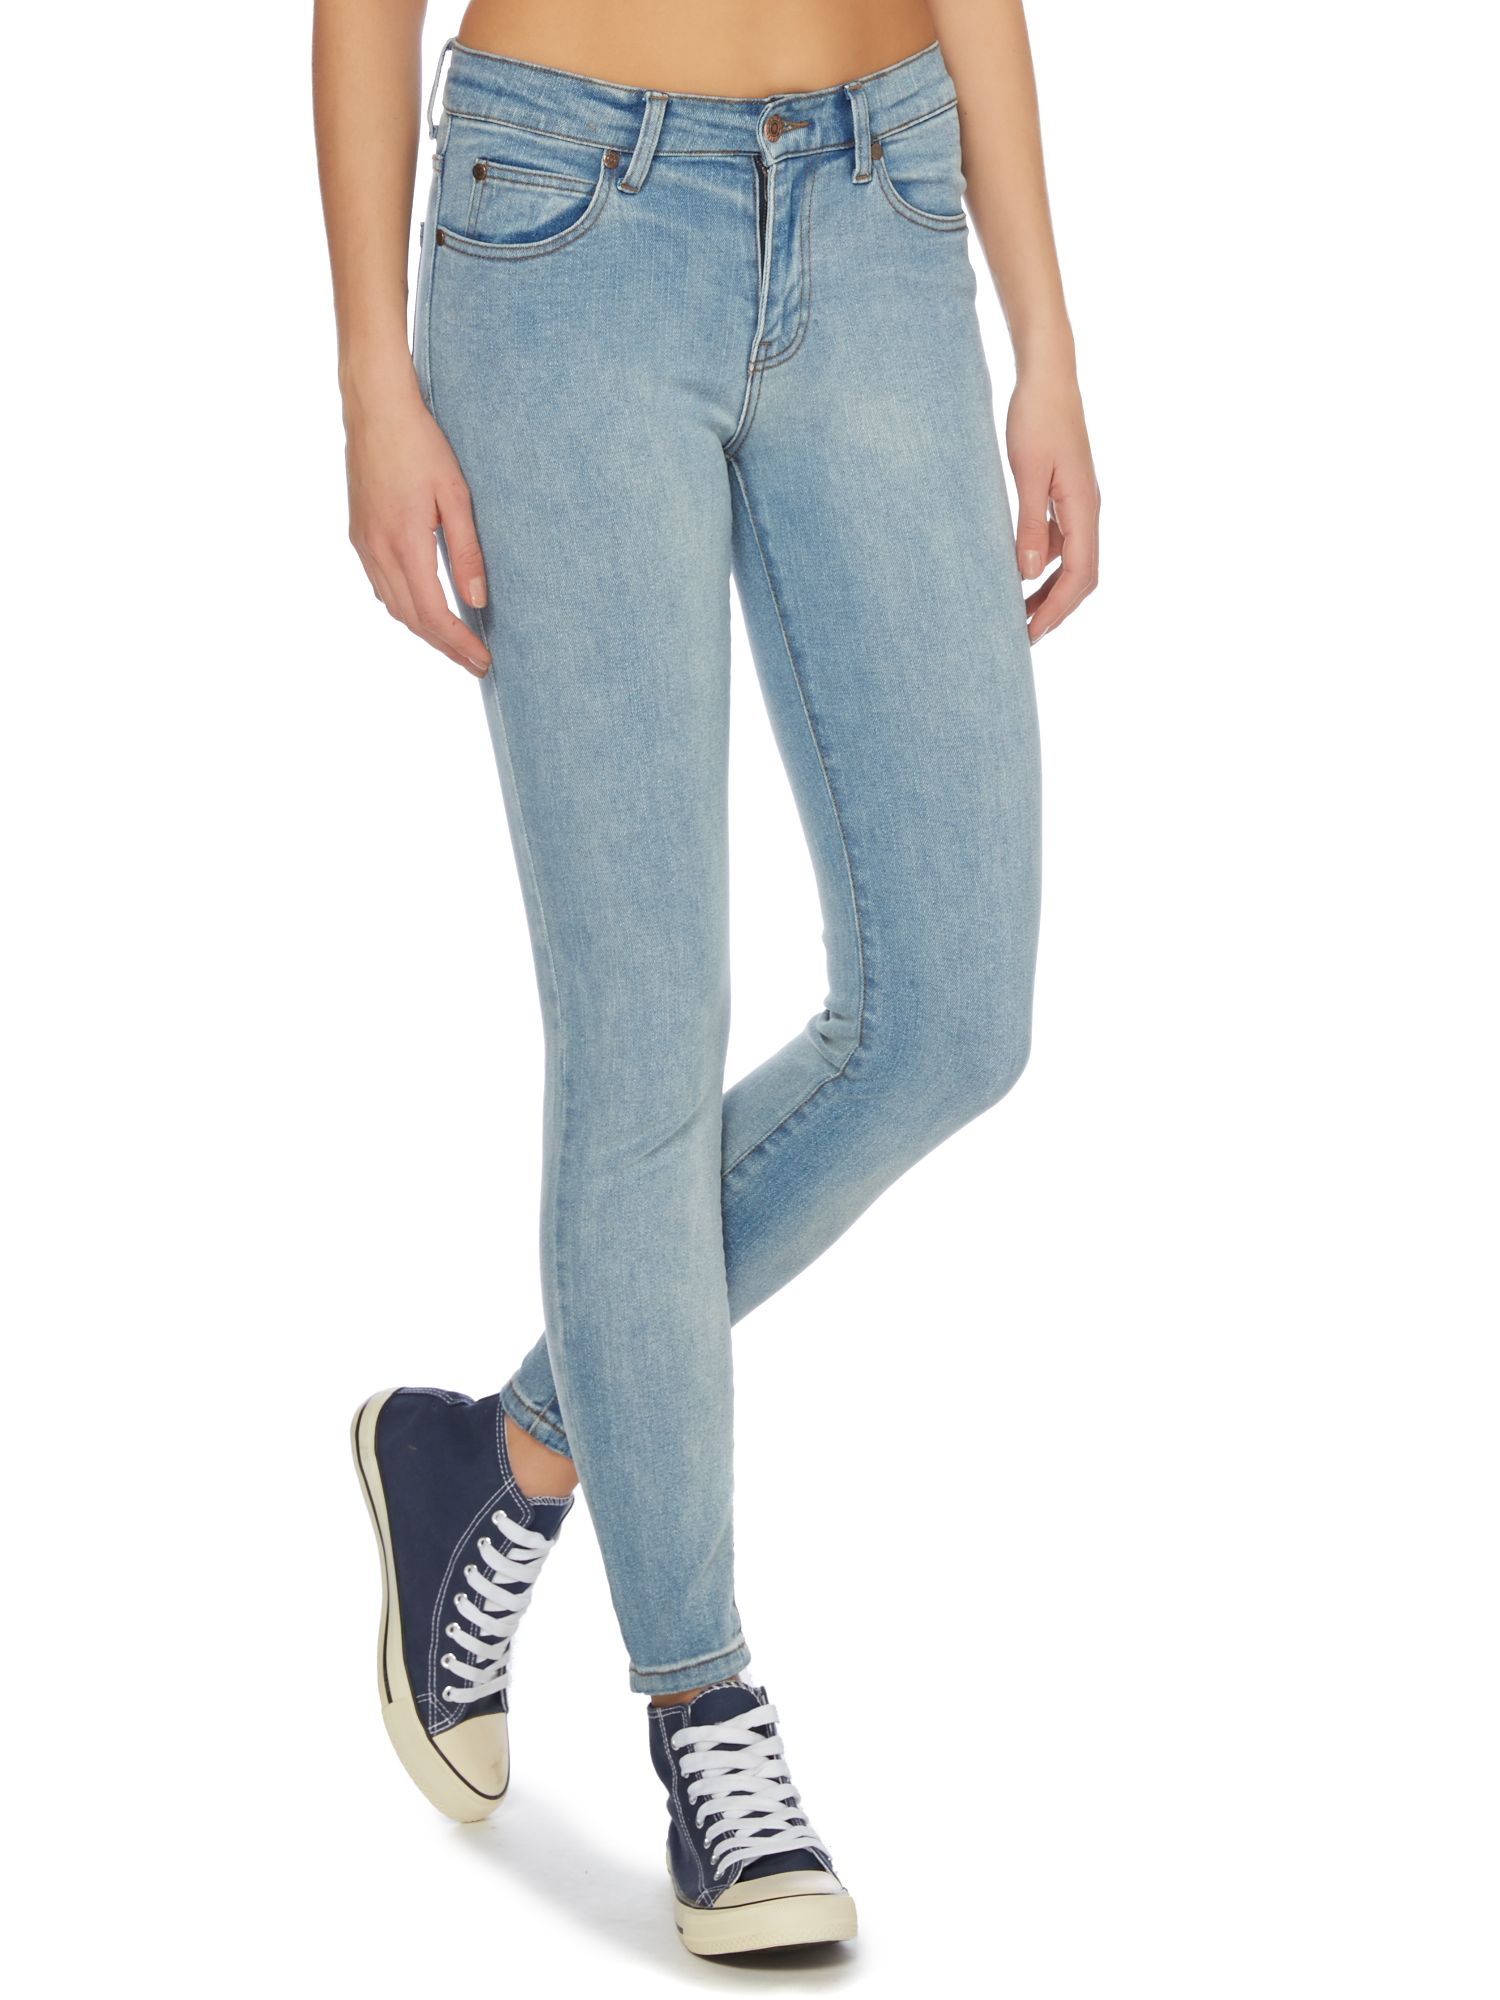 Dr denim regina 5 pocket skinny jeans